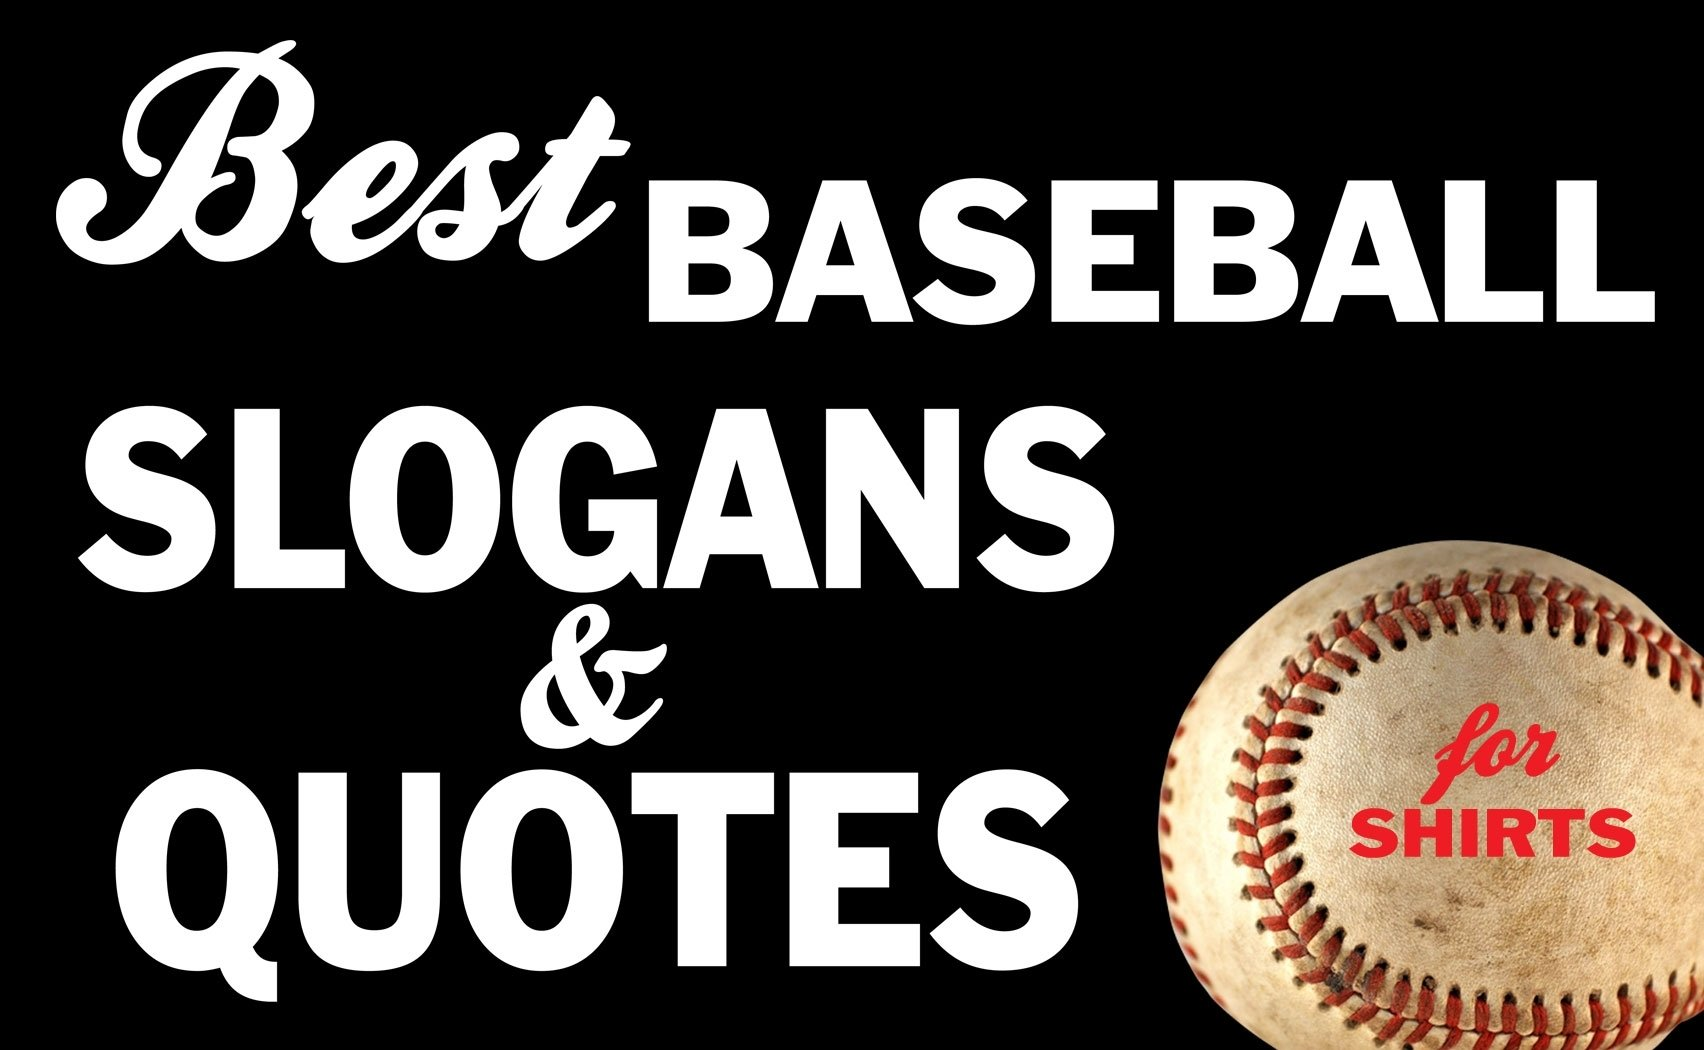 10 Famous Baseball T Shirt Designs Ideas iza design blogthe best baseball slogans and quotes for t shirts 2020